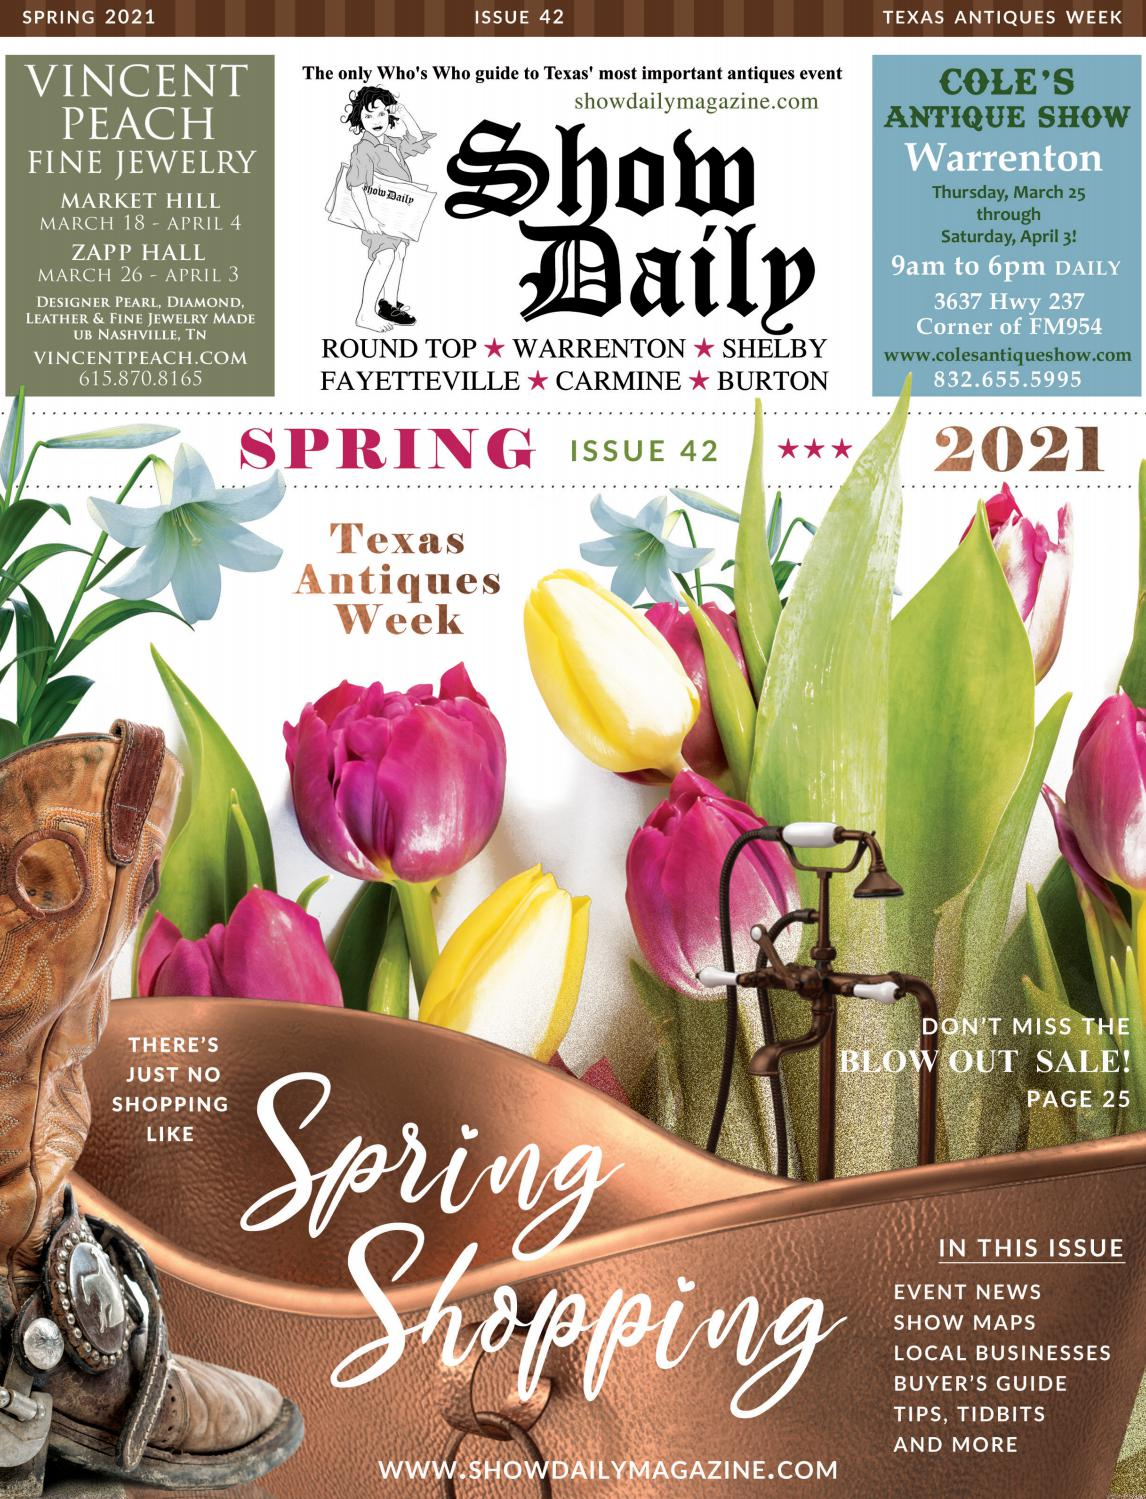 Christmas Roadshow Tour 2021 Texas Show Daily Spring 2021 Texas Antiques Week By Digital Publisher Issuu